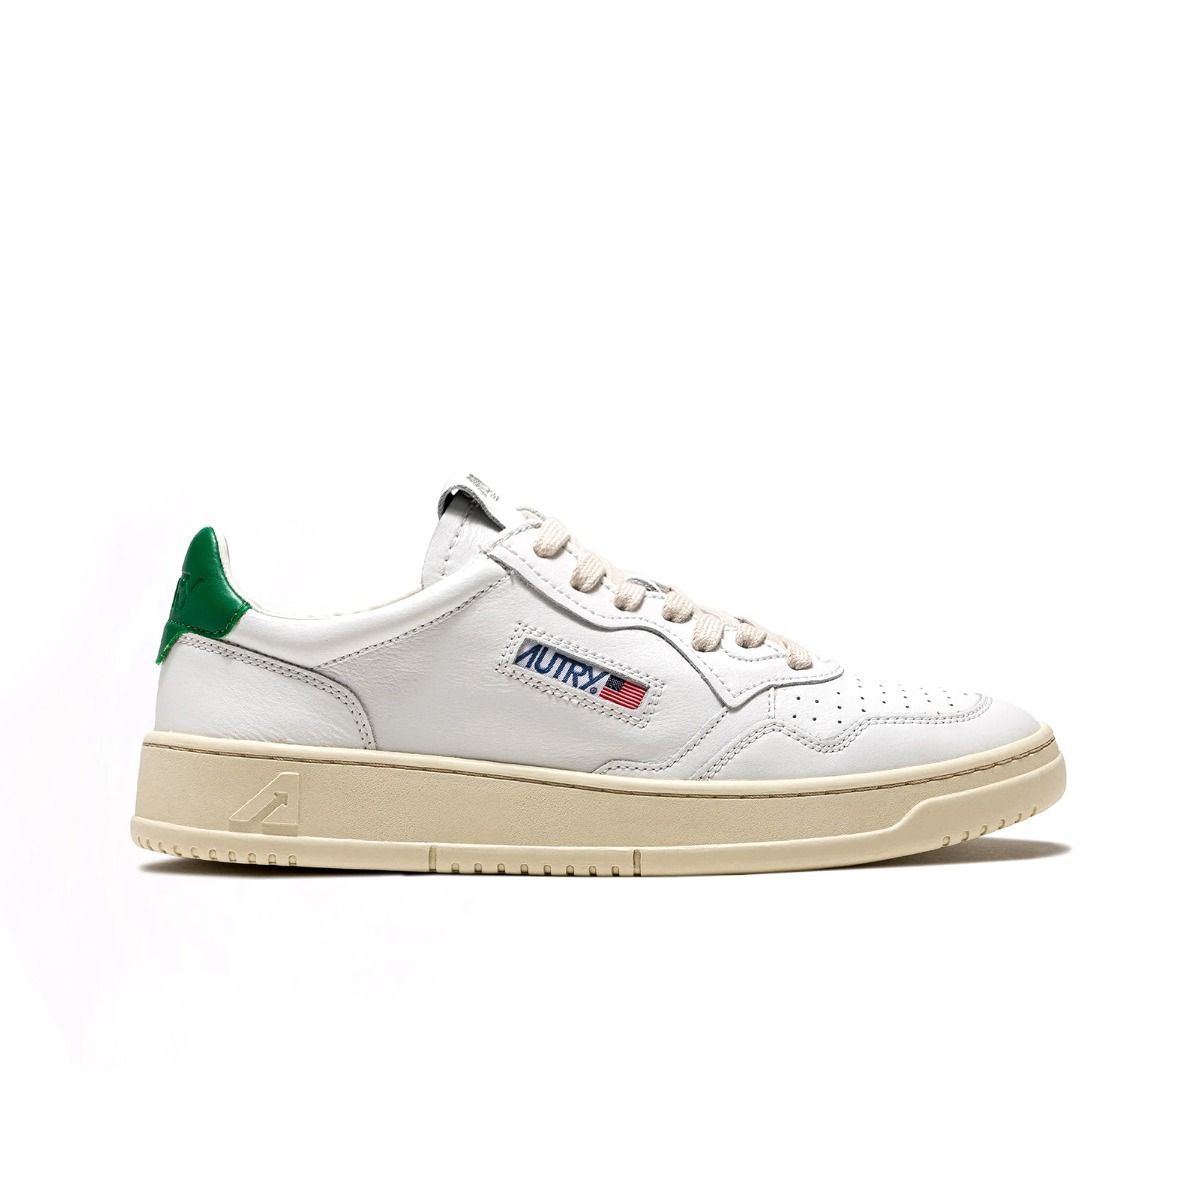 autry low uomo sneakers AULMLL20